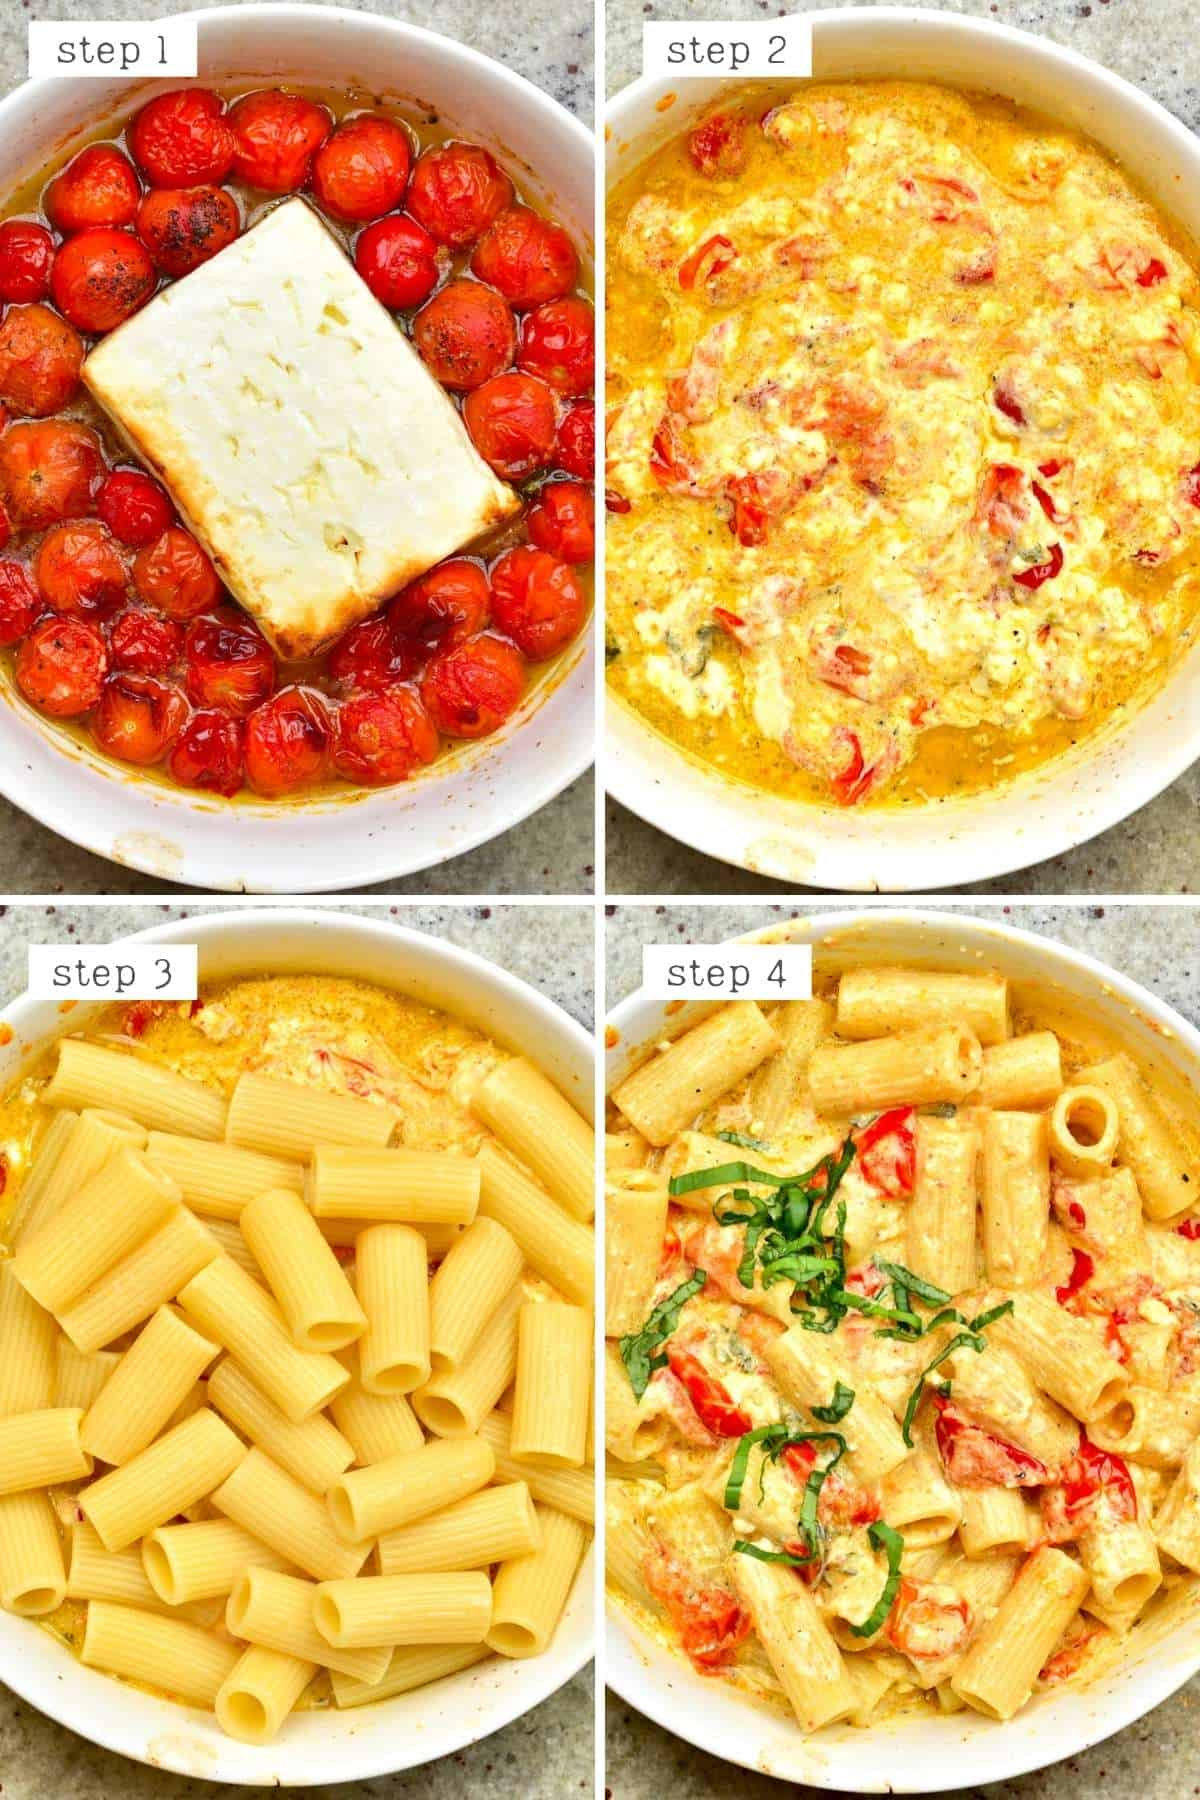 Steps for mixing tomato feta pasta